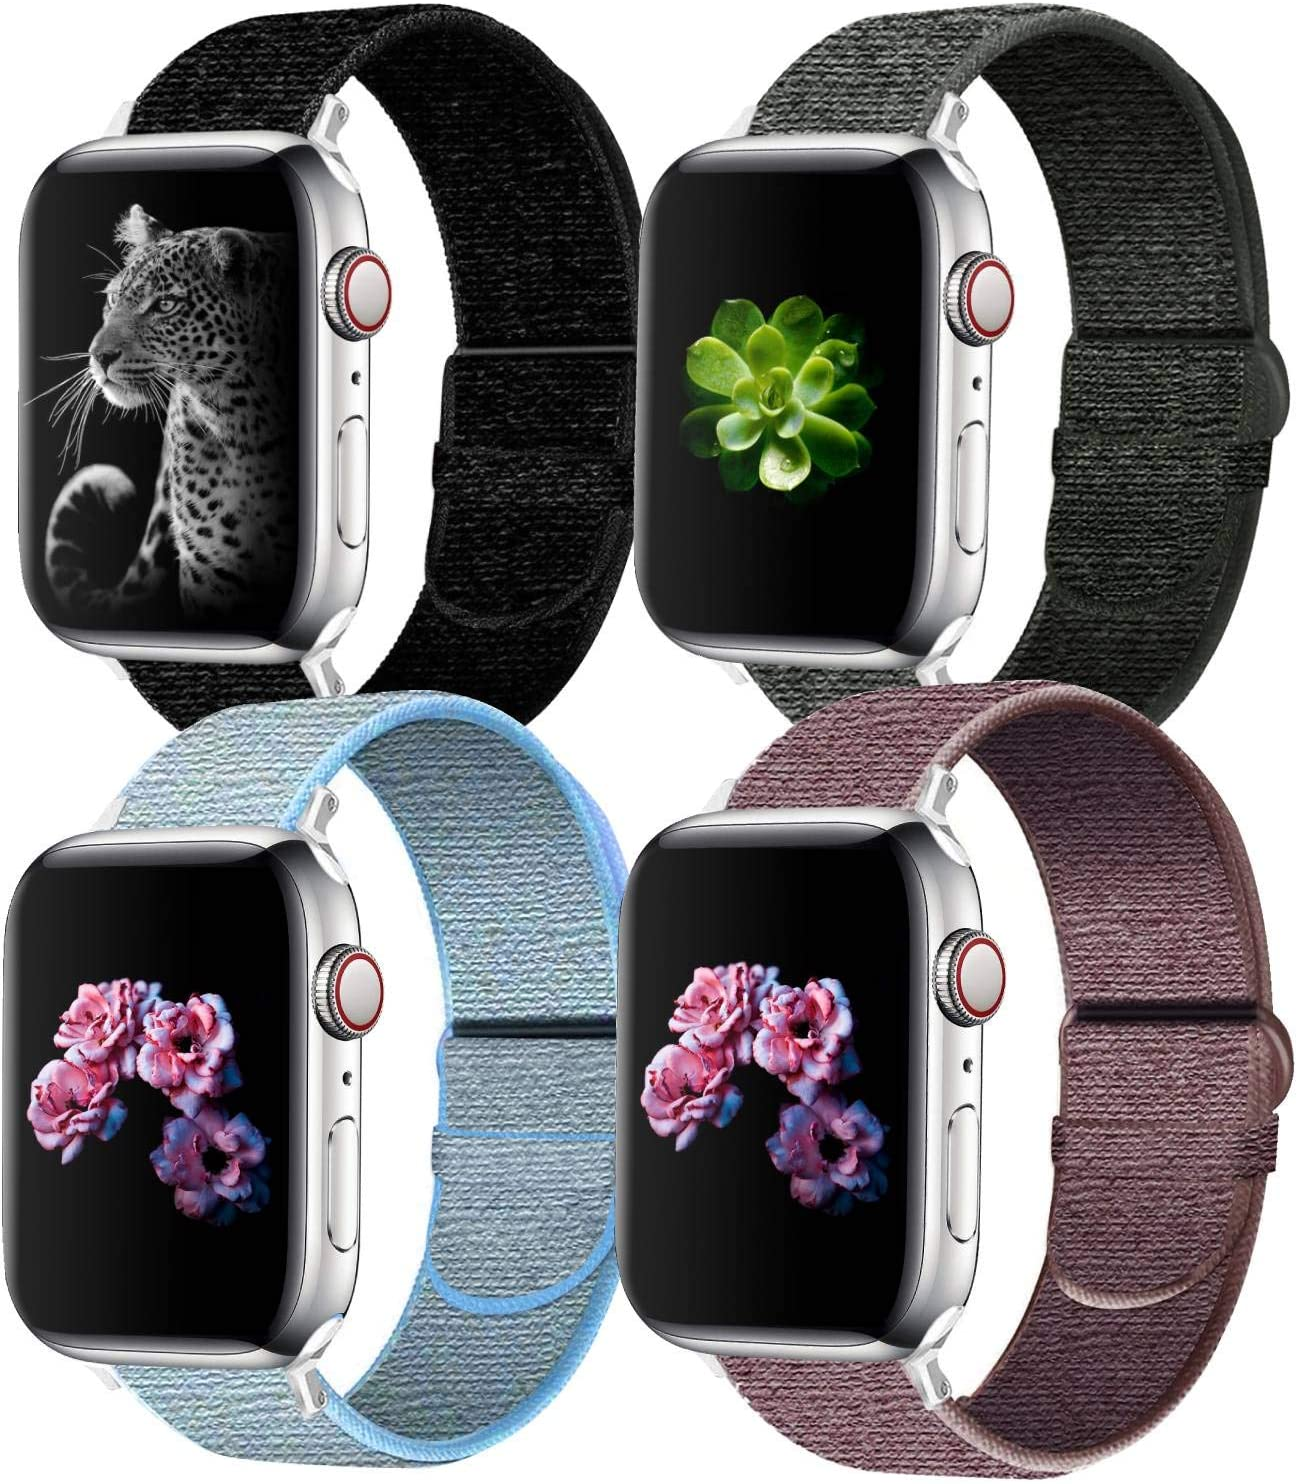 NOY Sport Watch Band Compatible with Apple Watch Band 44mm/42mm/40mm/38mm, Stylish and Comfy Adjustable Nylon Loop Replacement Strap for iWatch Series 5/4/3/2/1